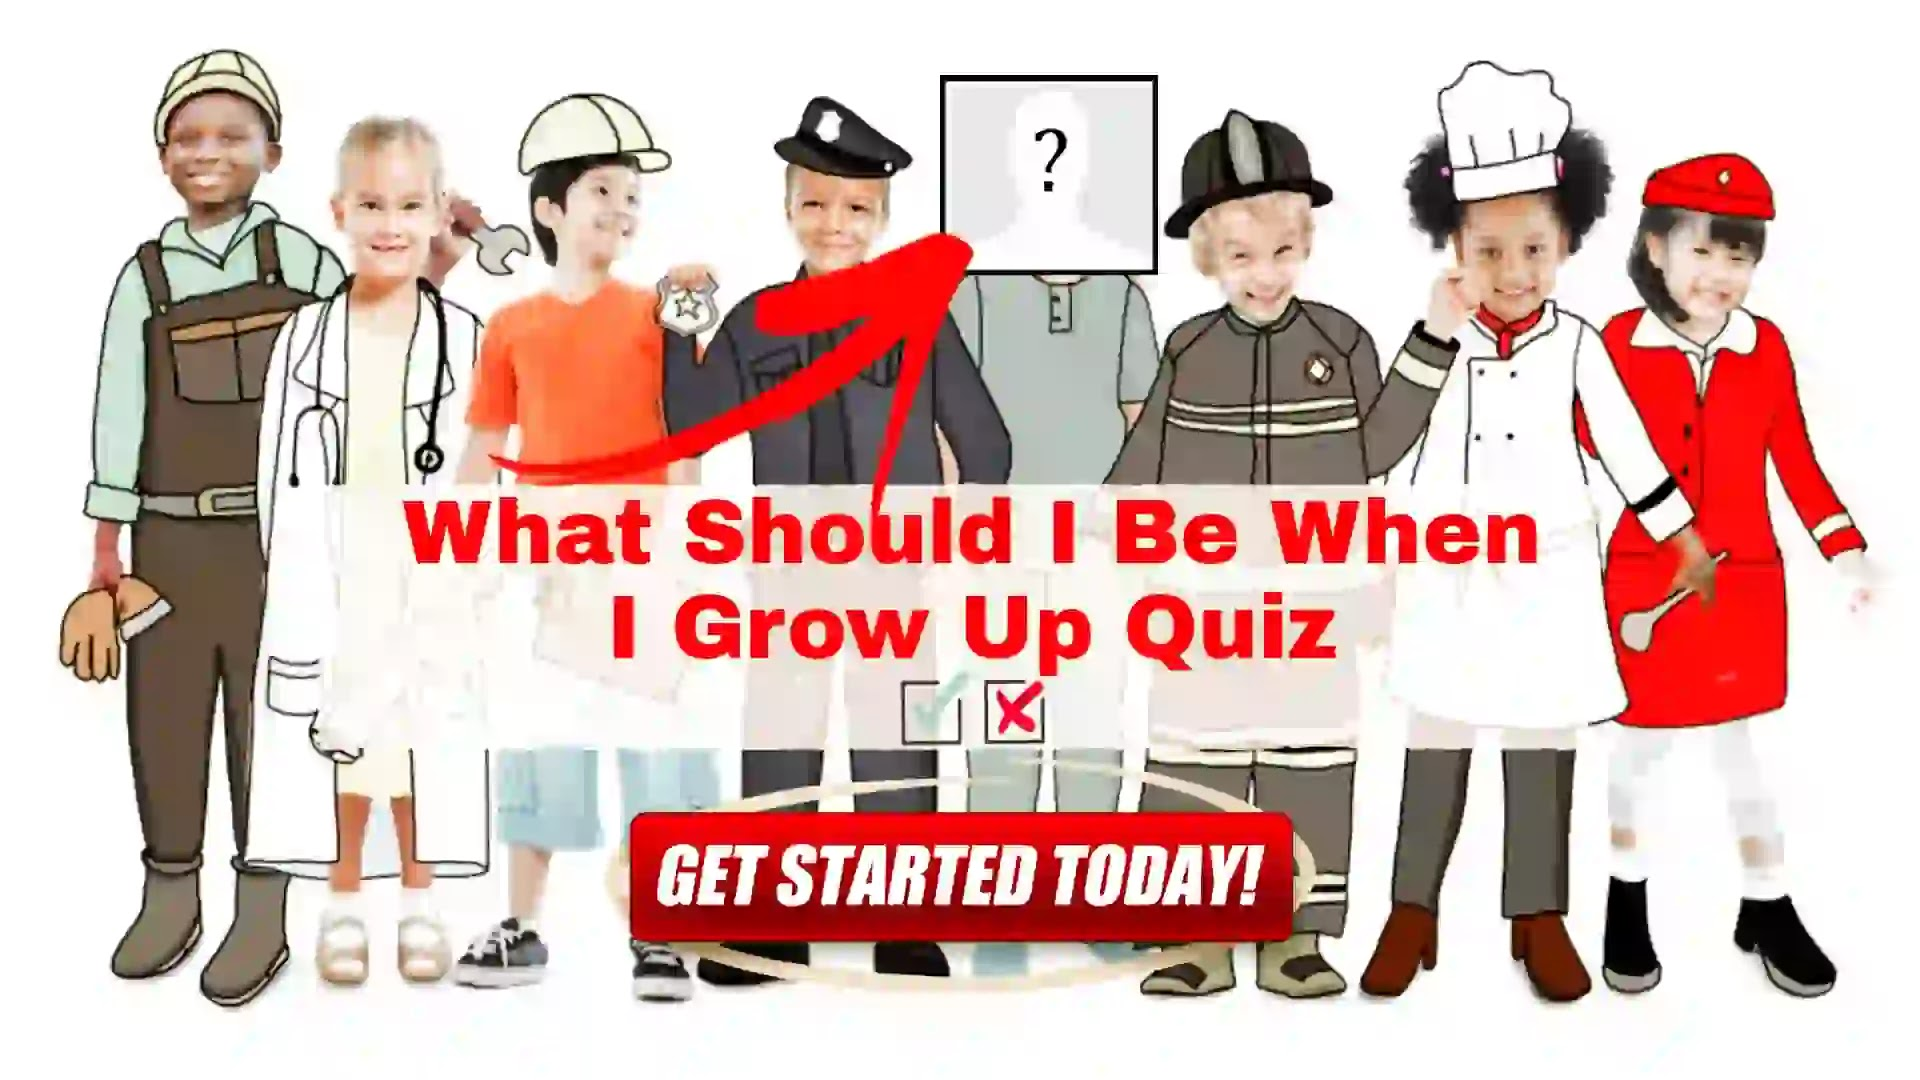 What Should I Be When I Grow Up Quiz